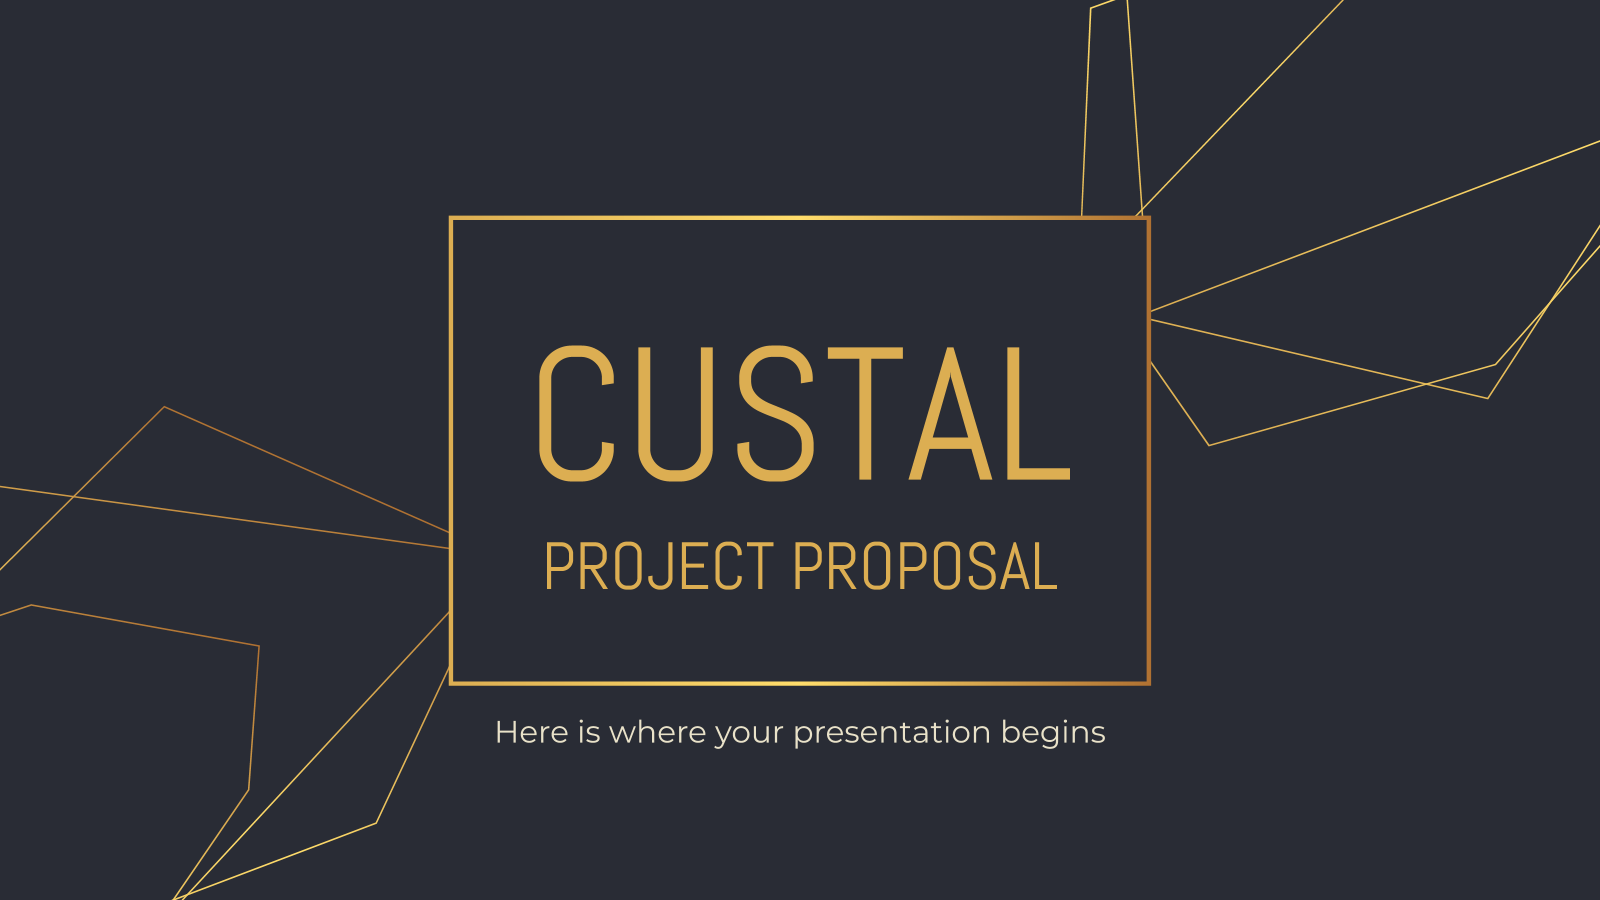 Custal Project Proposal presentation template